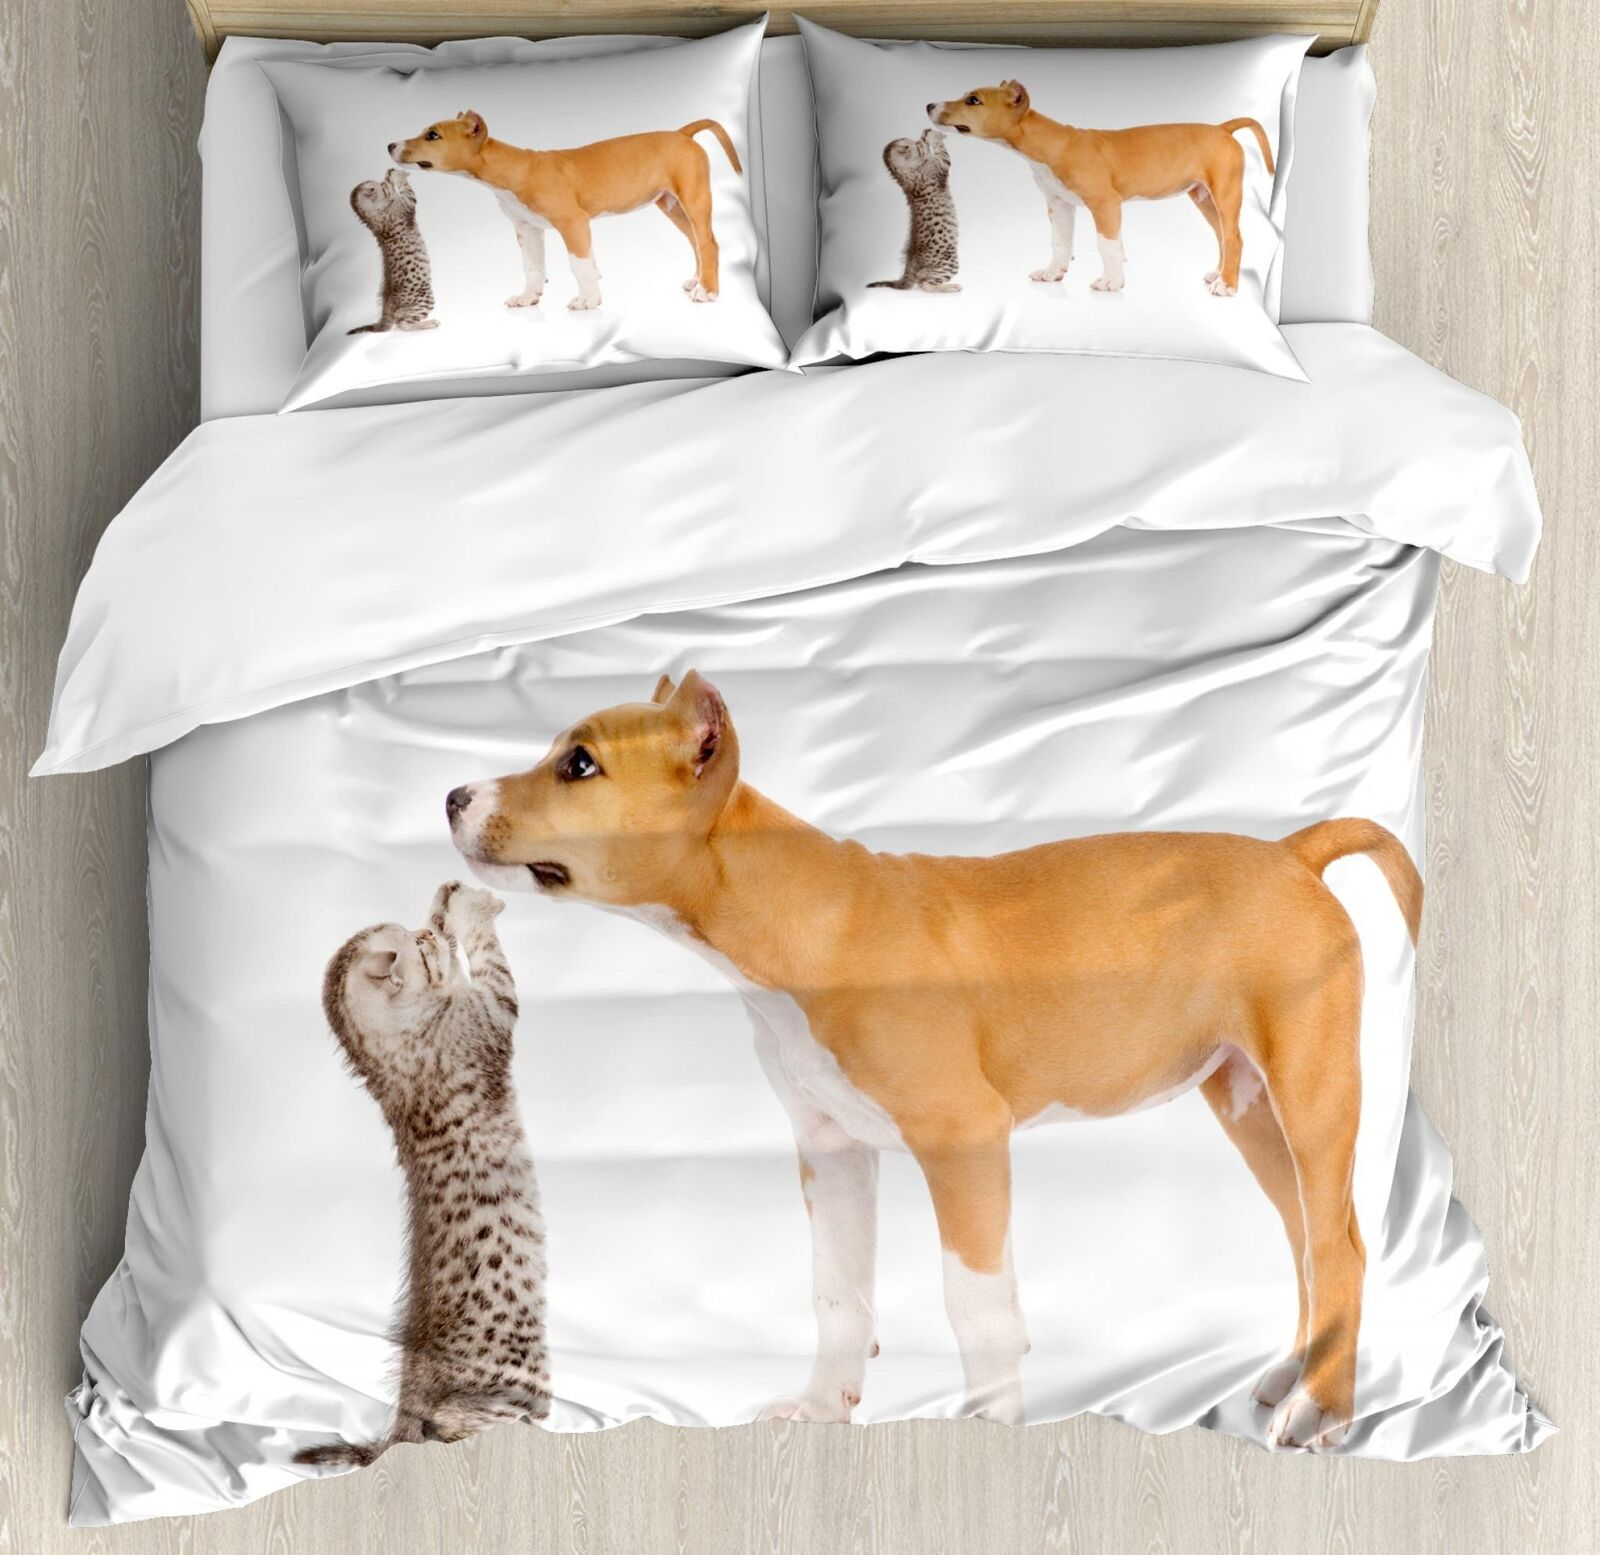 Pitbull Duvet Cover Set Twin Queen King Größes with Pillow Shams Ambesonne